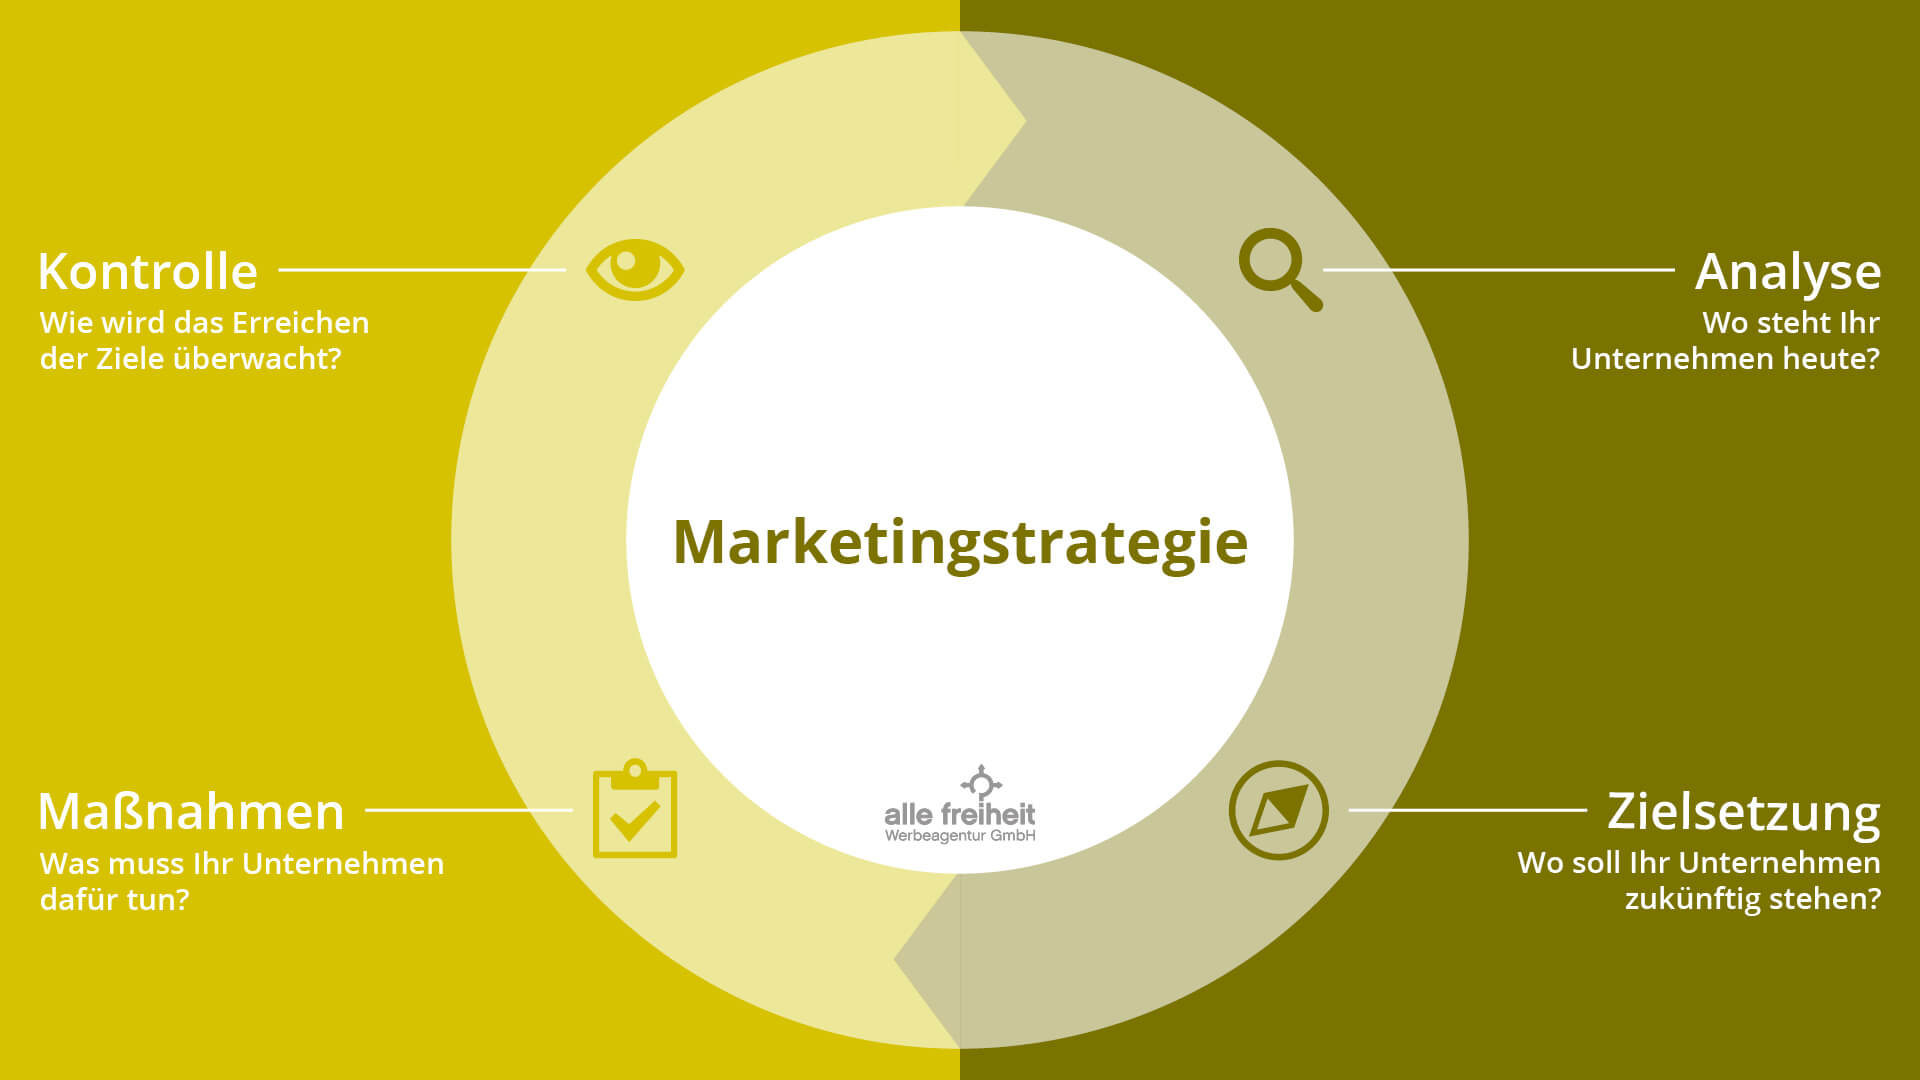 konzeption marketingstrategien allefreiheit